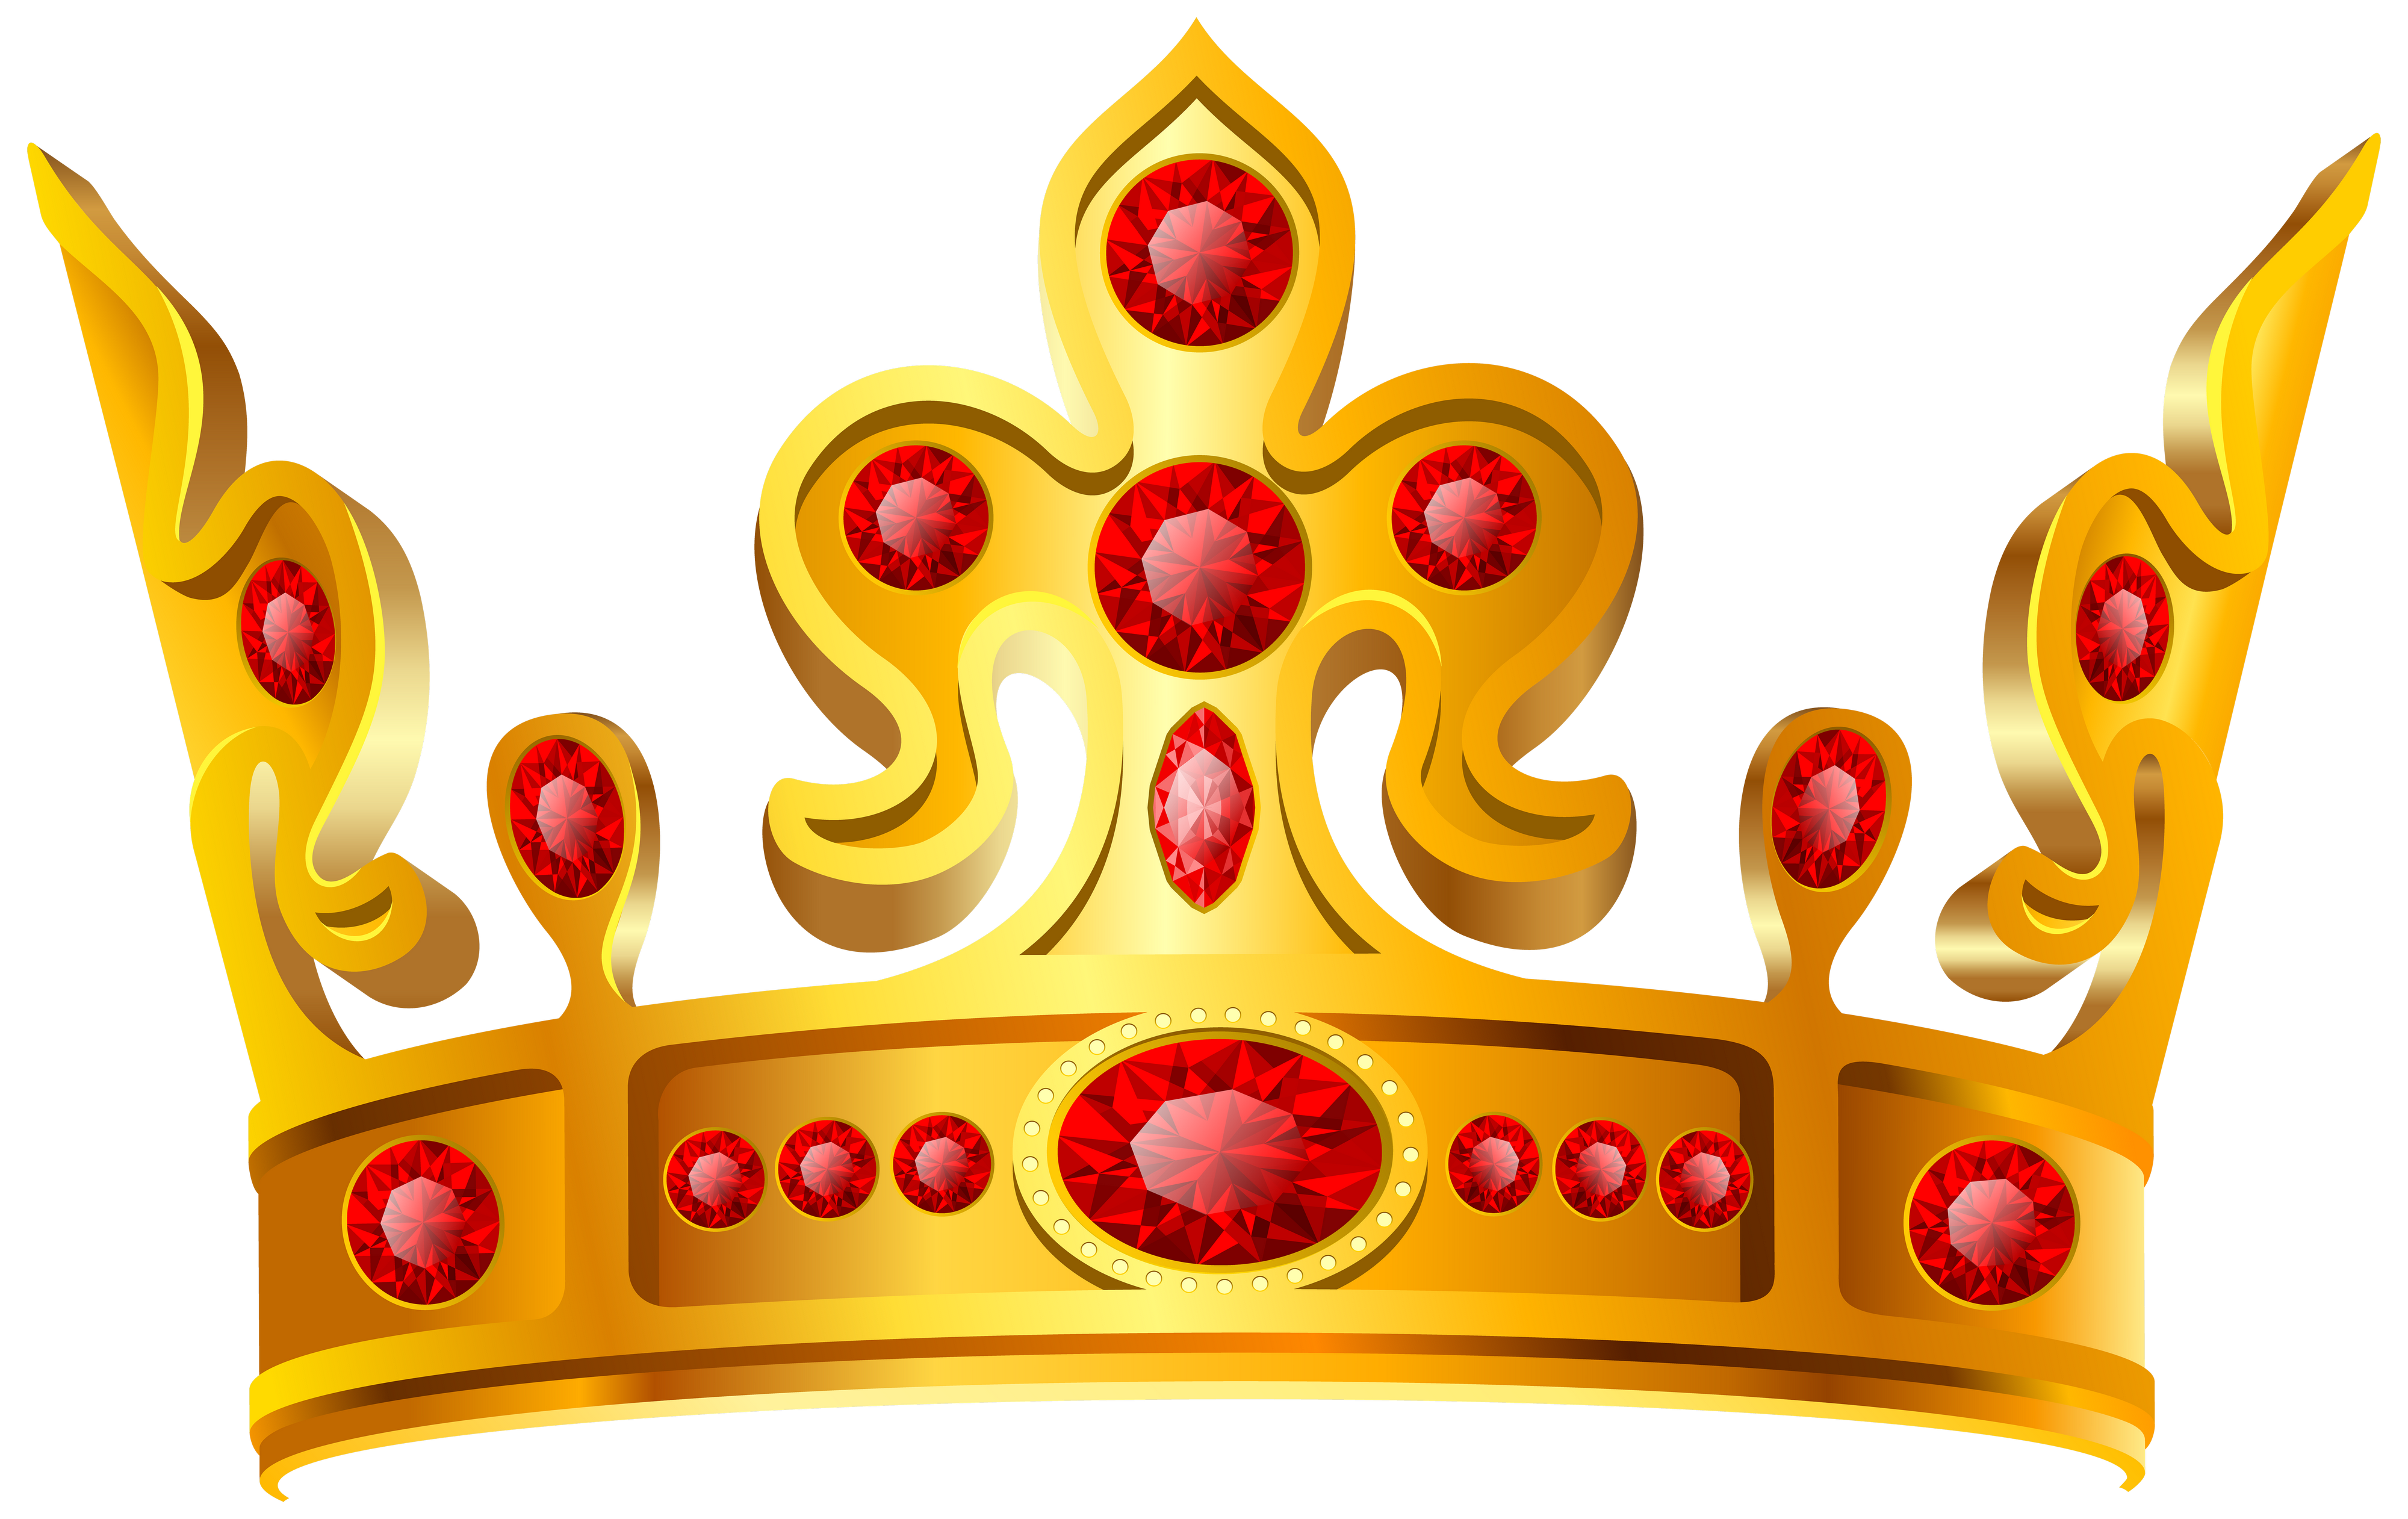 Transparent prince crown clipart png clip art black and white Gold Crown Red Stone PNG Image - PurePNG | Free transparent CC0 PNG ... clip art black and white